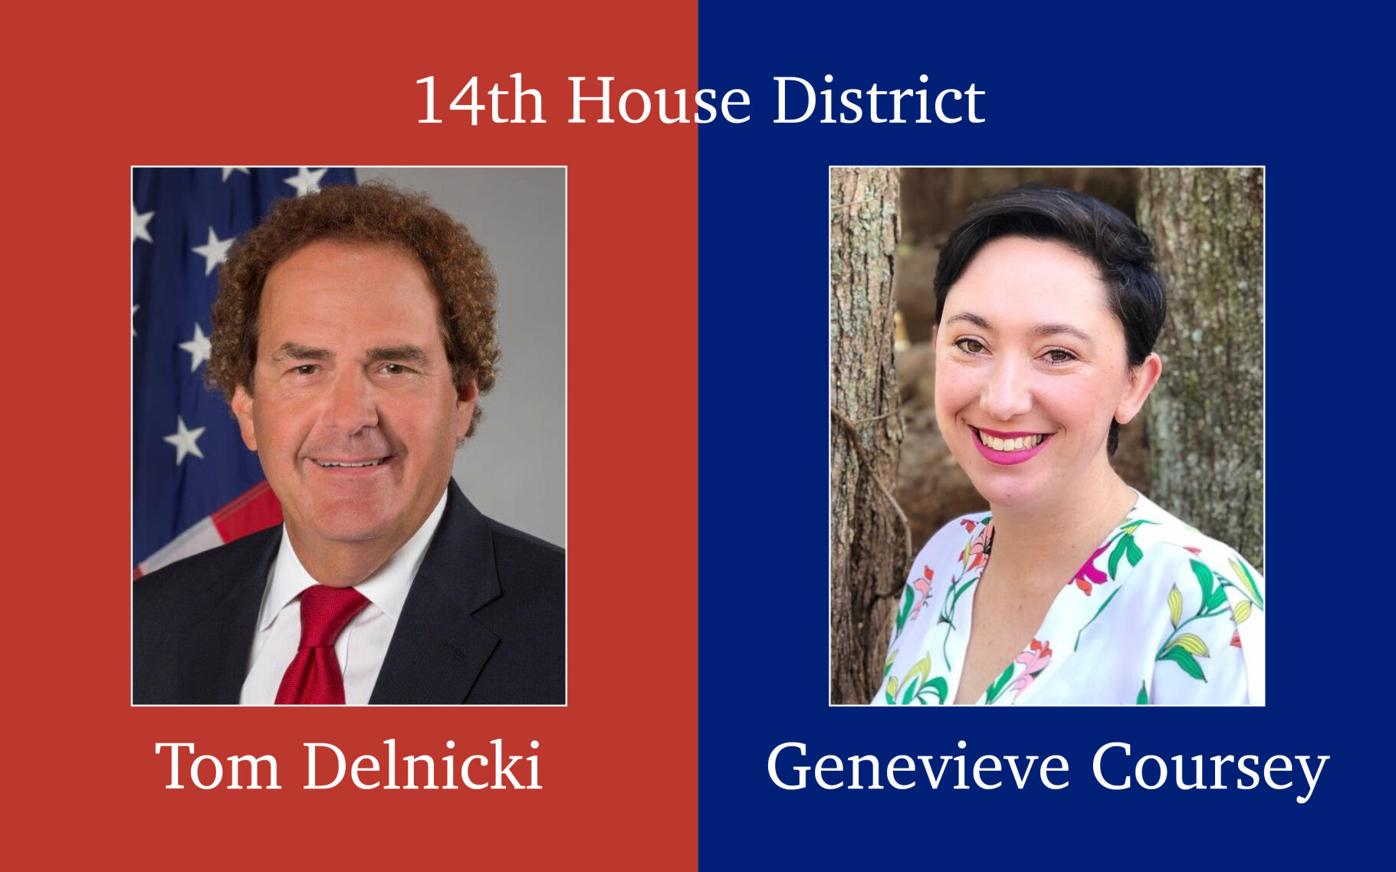 14th House District candidates / wrap